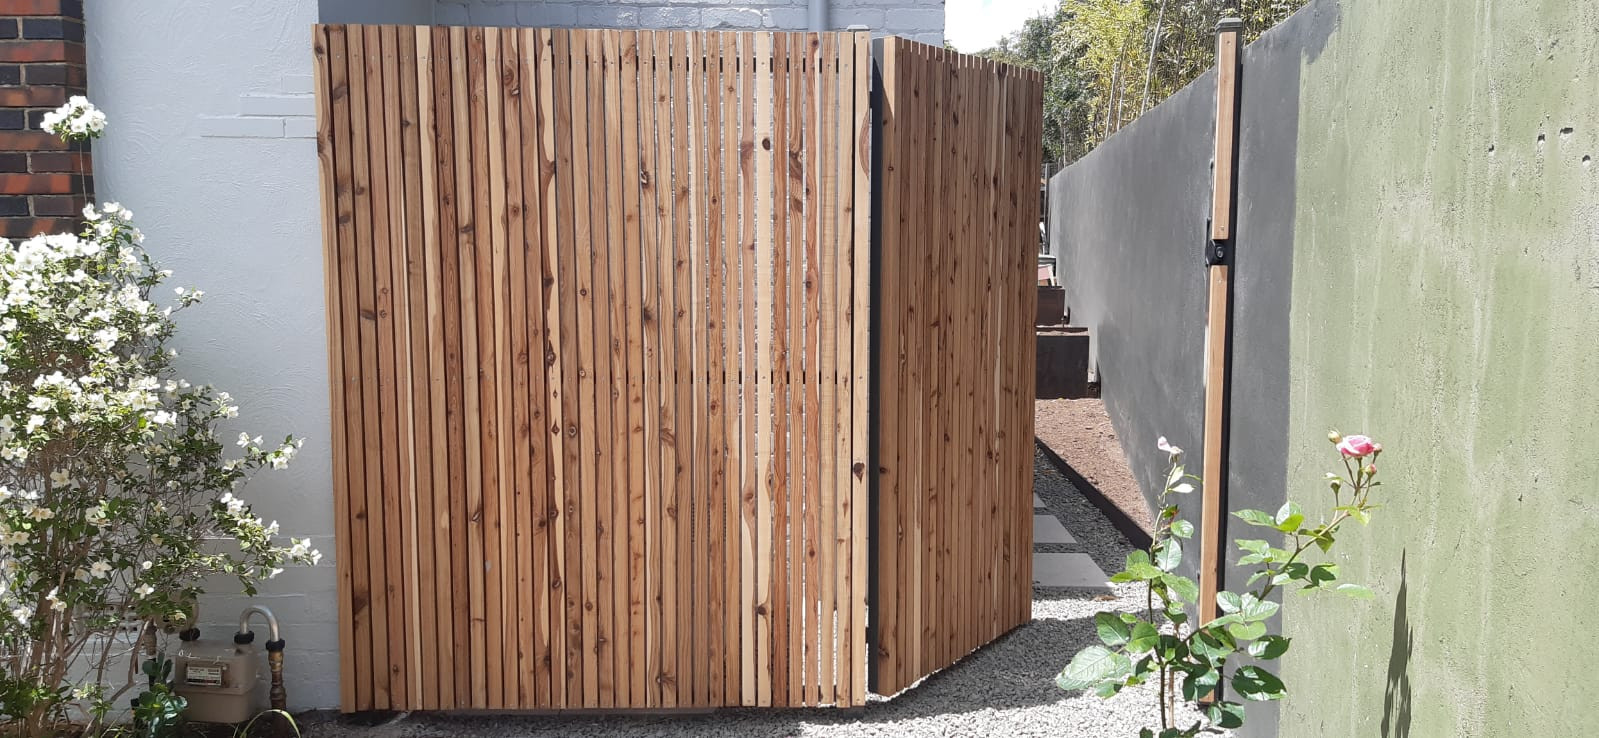 2m high batten fence and single gate